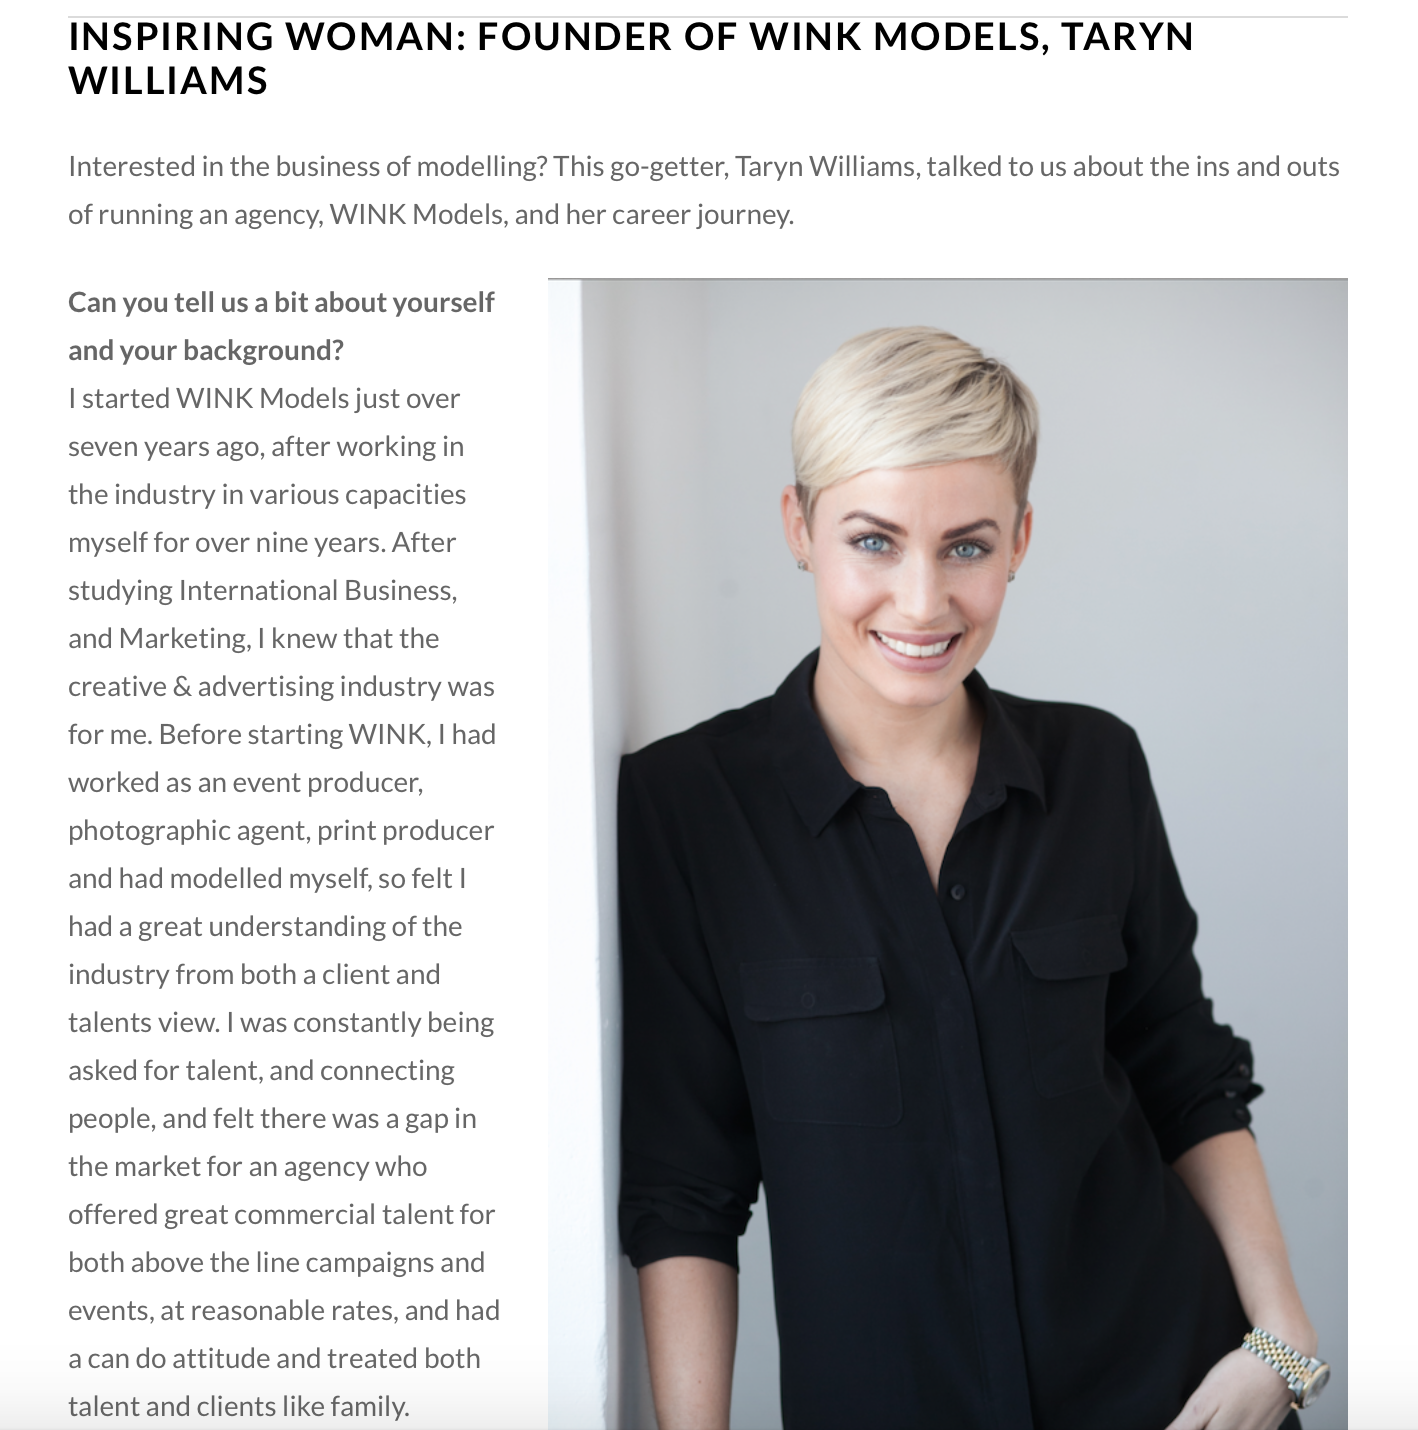 http://www.theworkher.com/inspiring-women/inspiring-woman-founder-wink-models-taryn-williams/